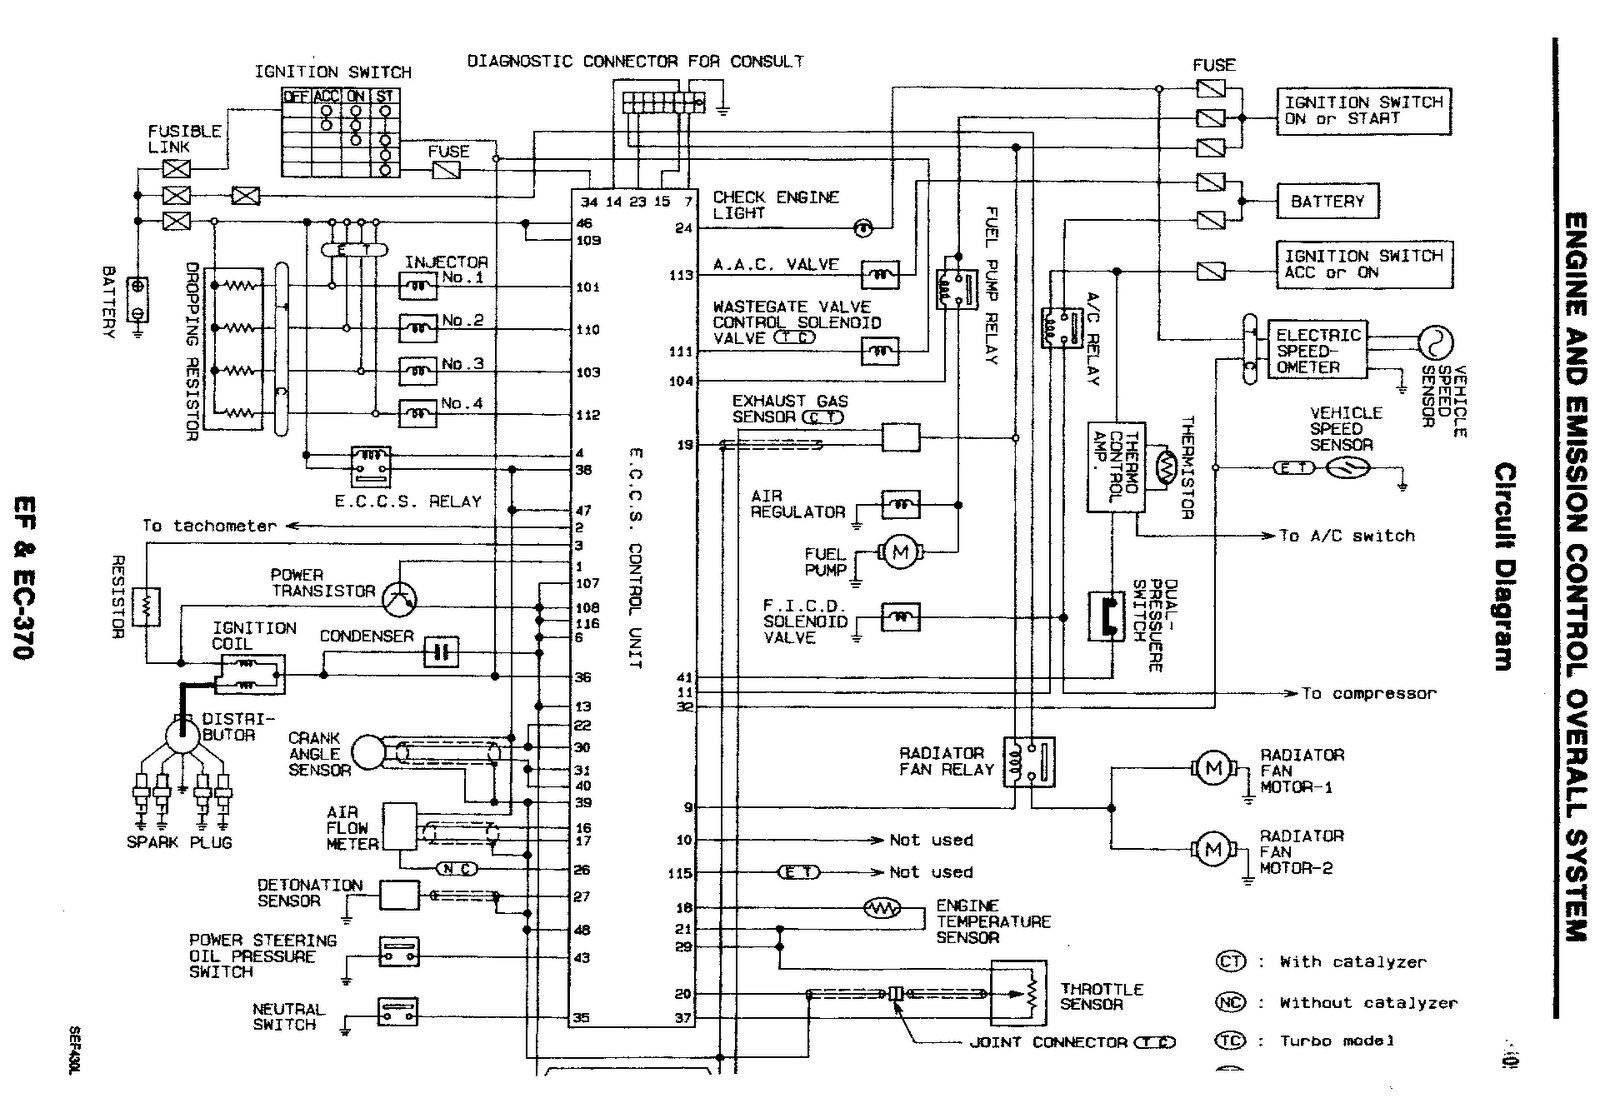 hight resolution of 2003 audi a4 b6 wiring diagram wiring diagrams bib 2003 audi a4 1 8 fuse diagram